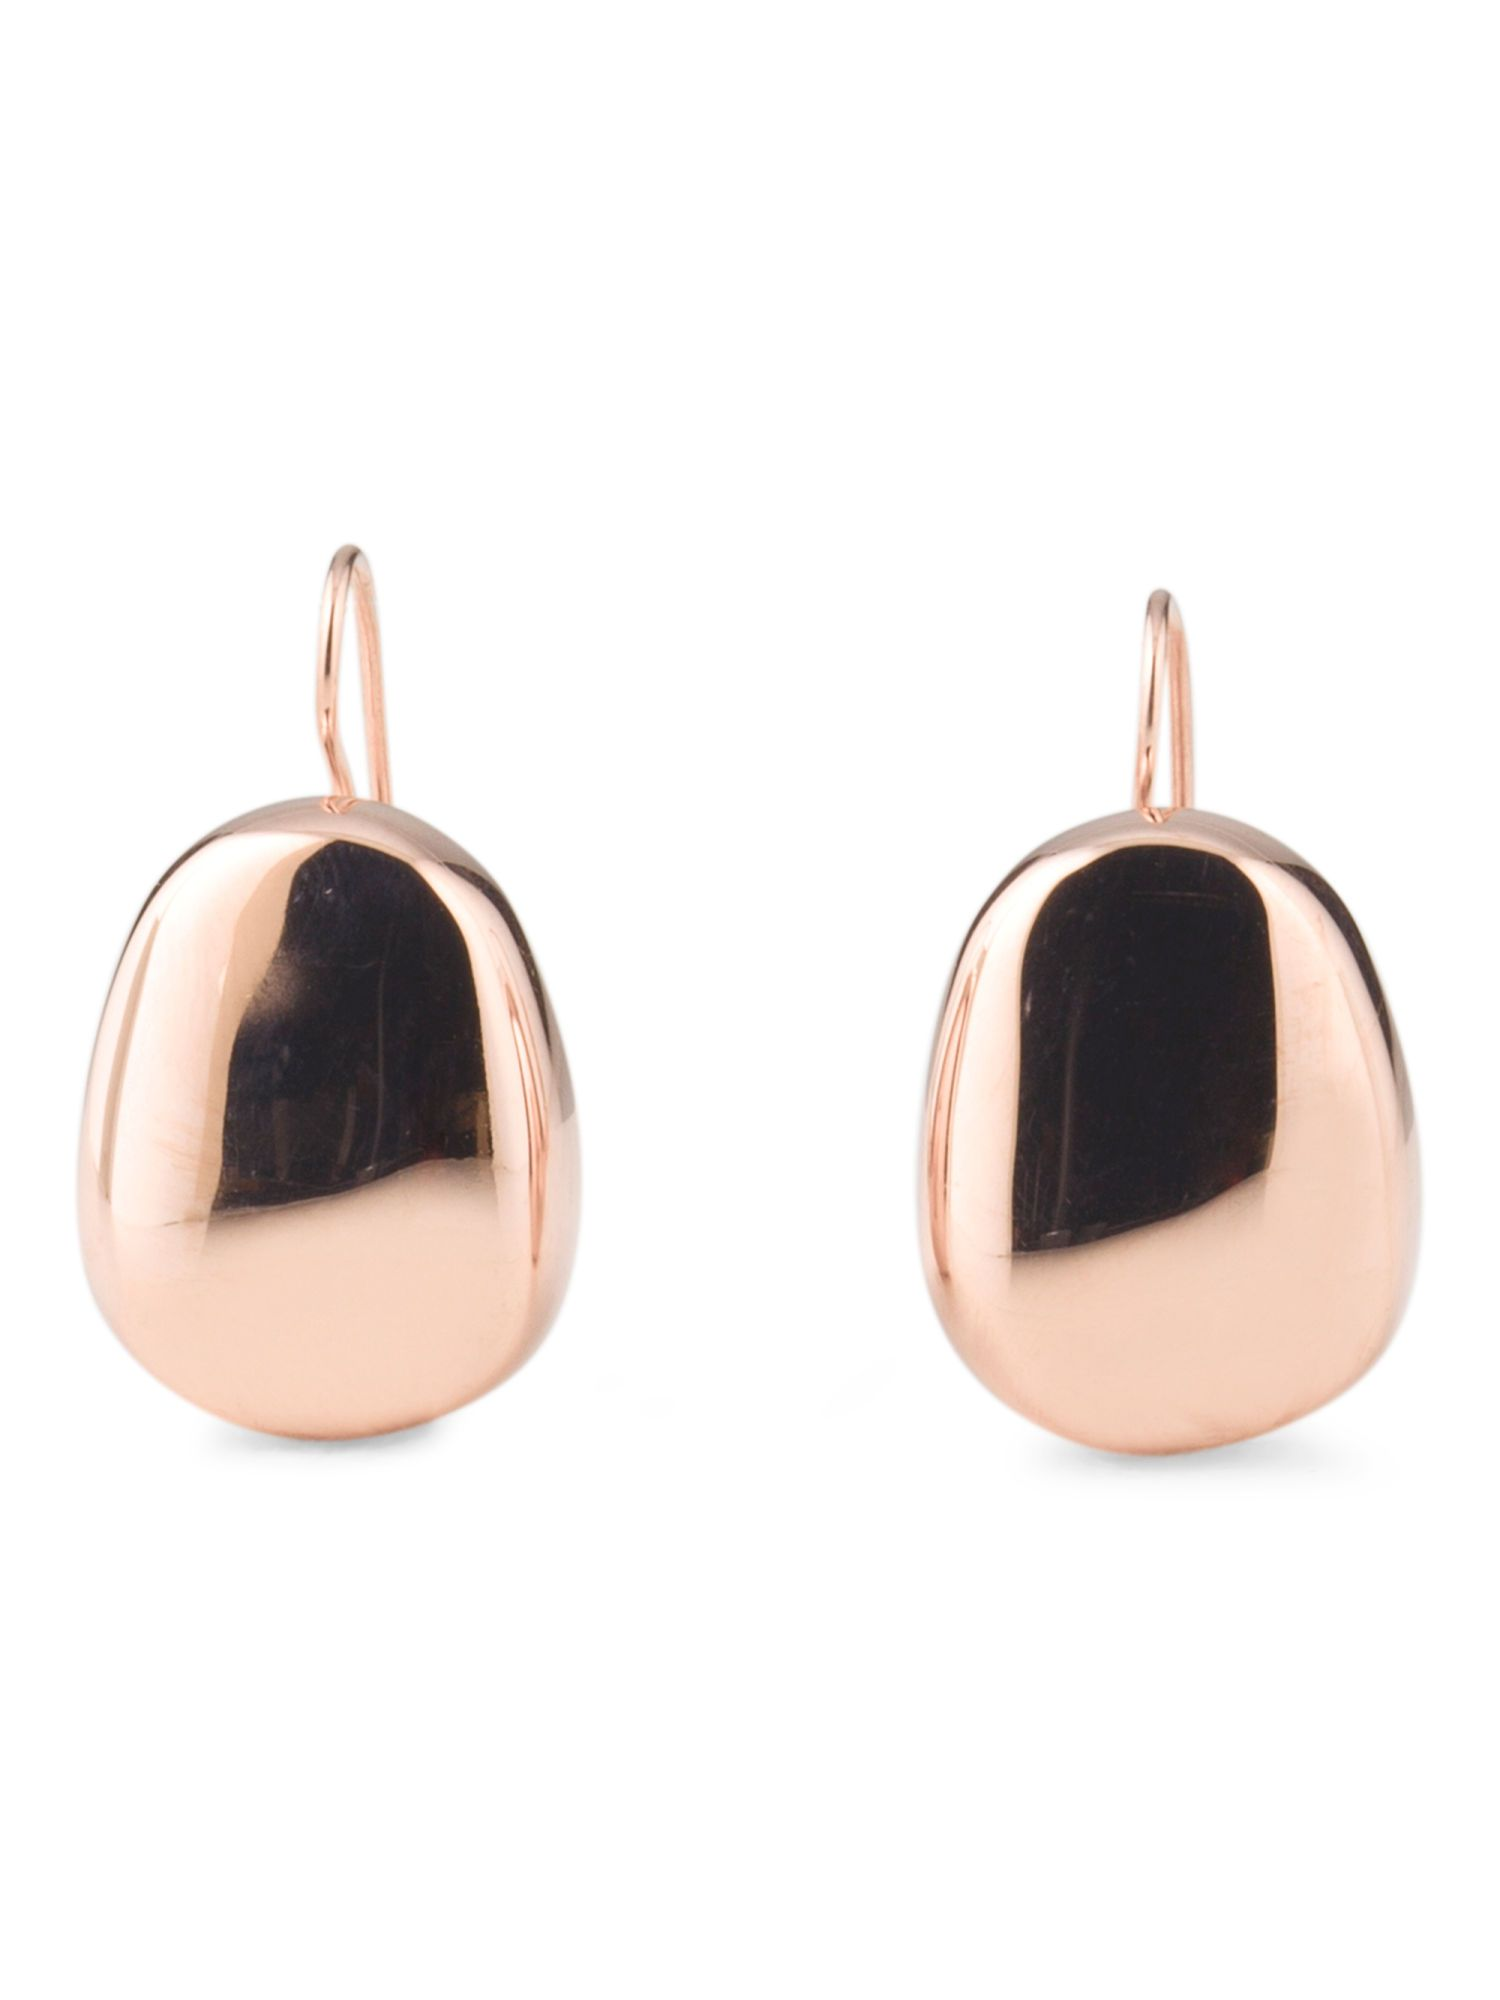 Rose gold always puts us in the holiday mood. We love these simple earrings.